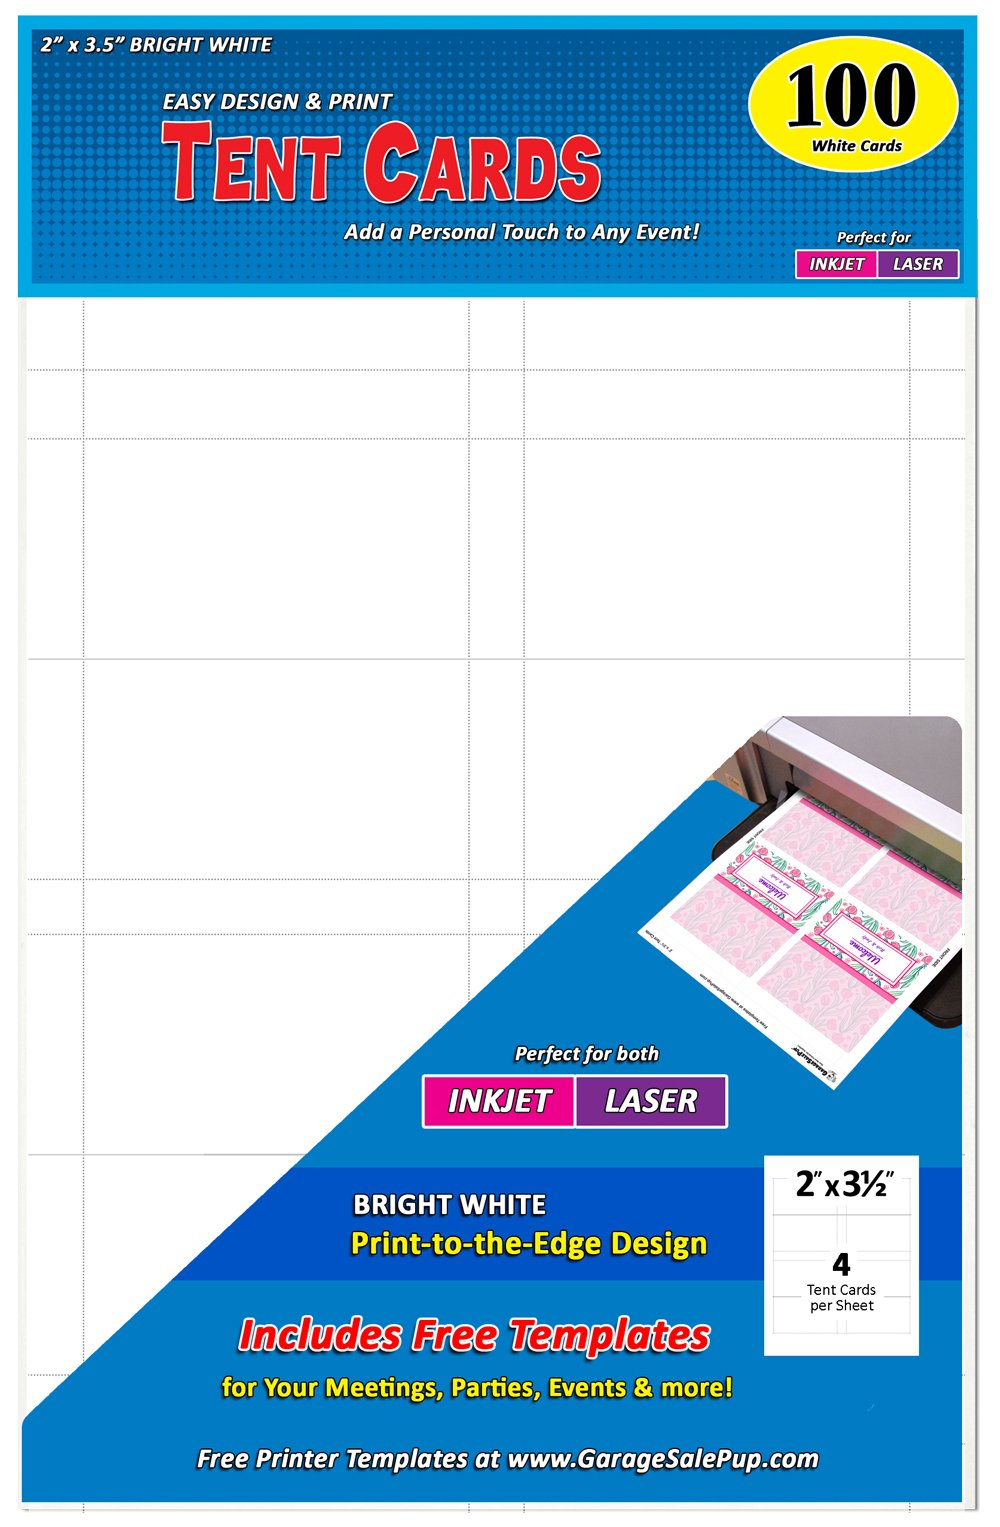 Pack of 100 Small Tent Cards, 2 x 3.5 inches, White, Laser & Inkjet